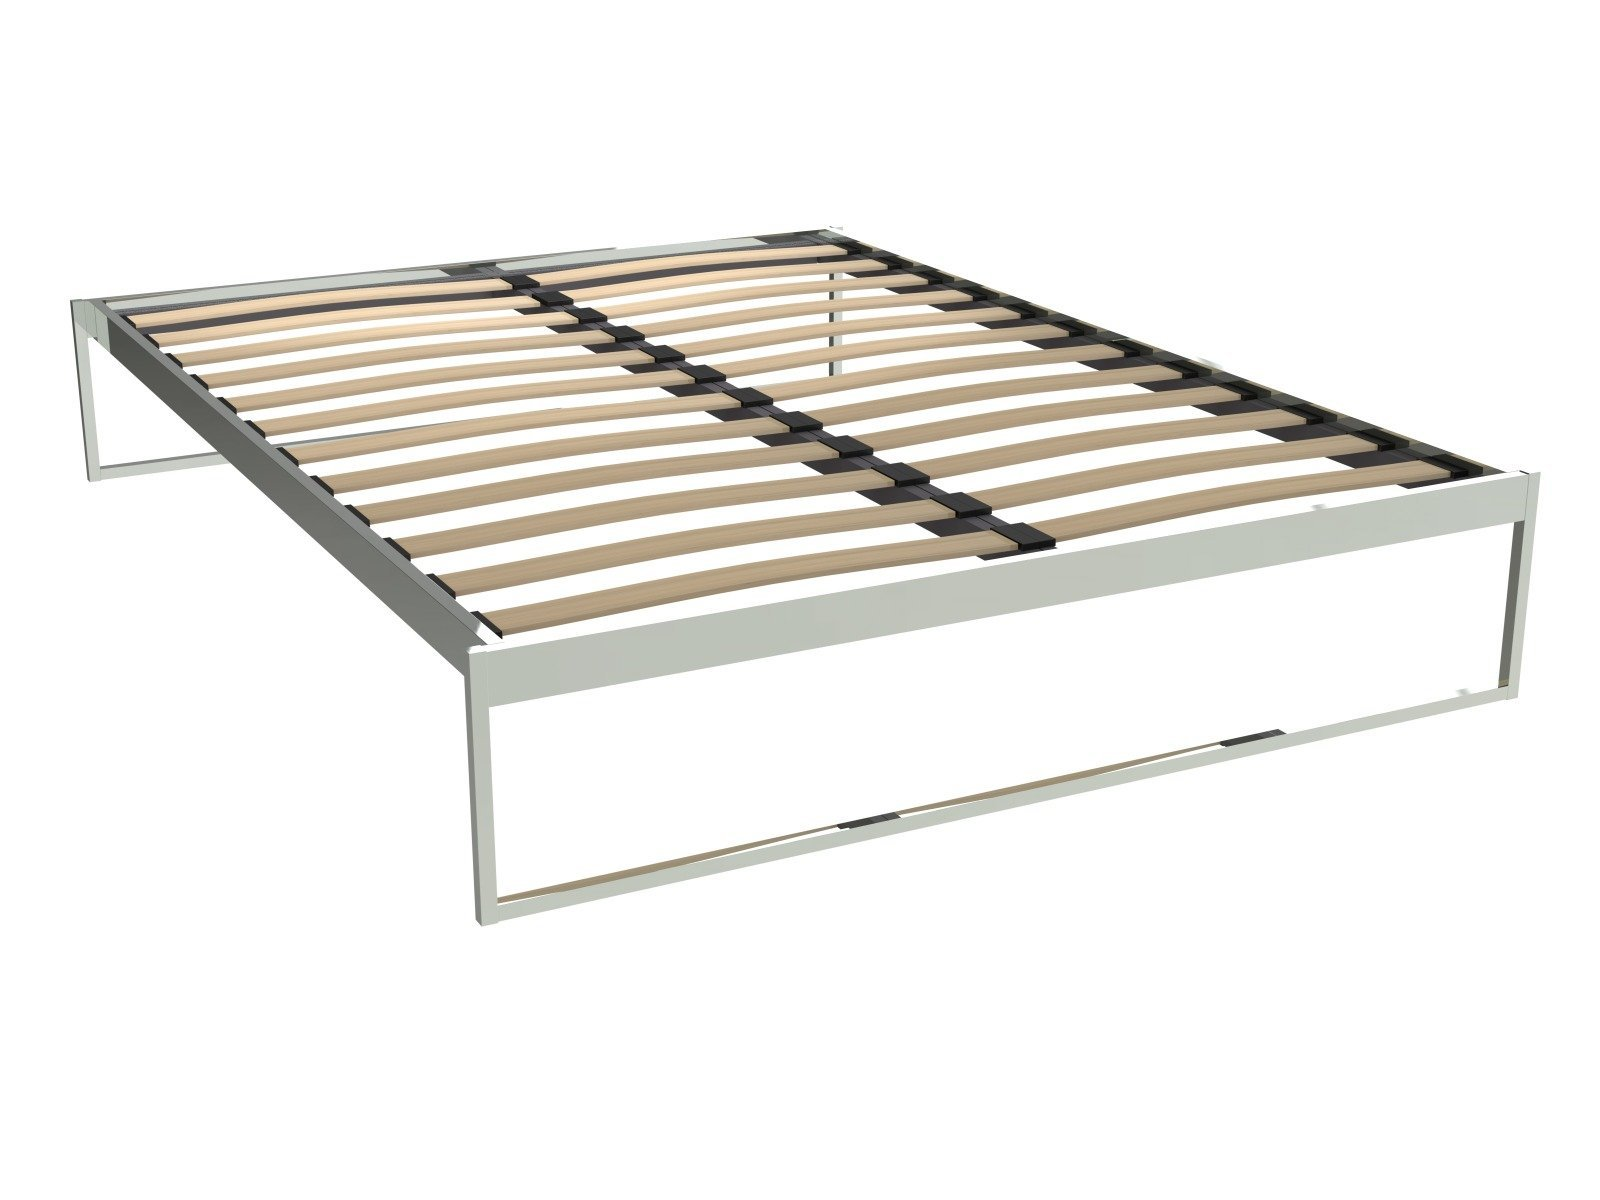 Bed frame (King)